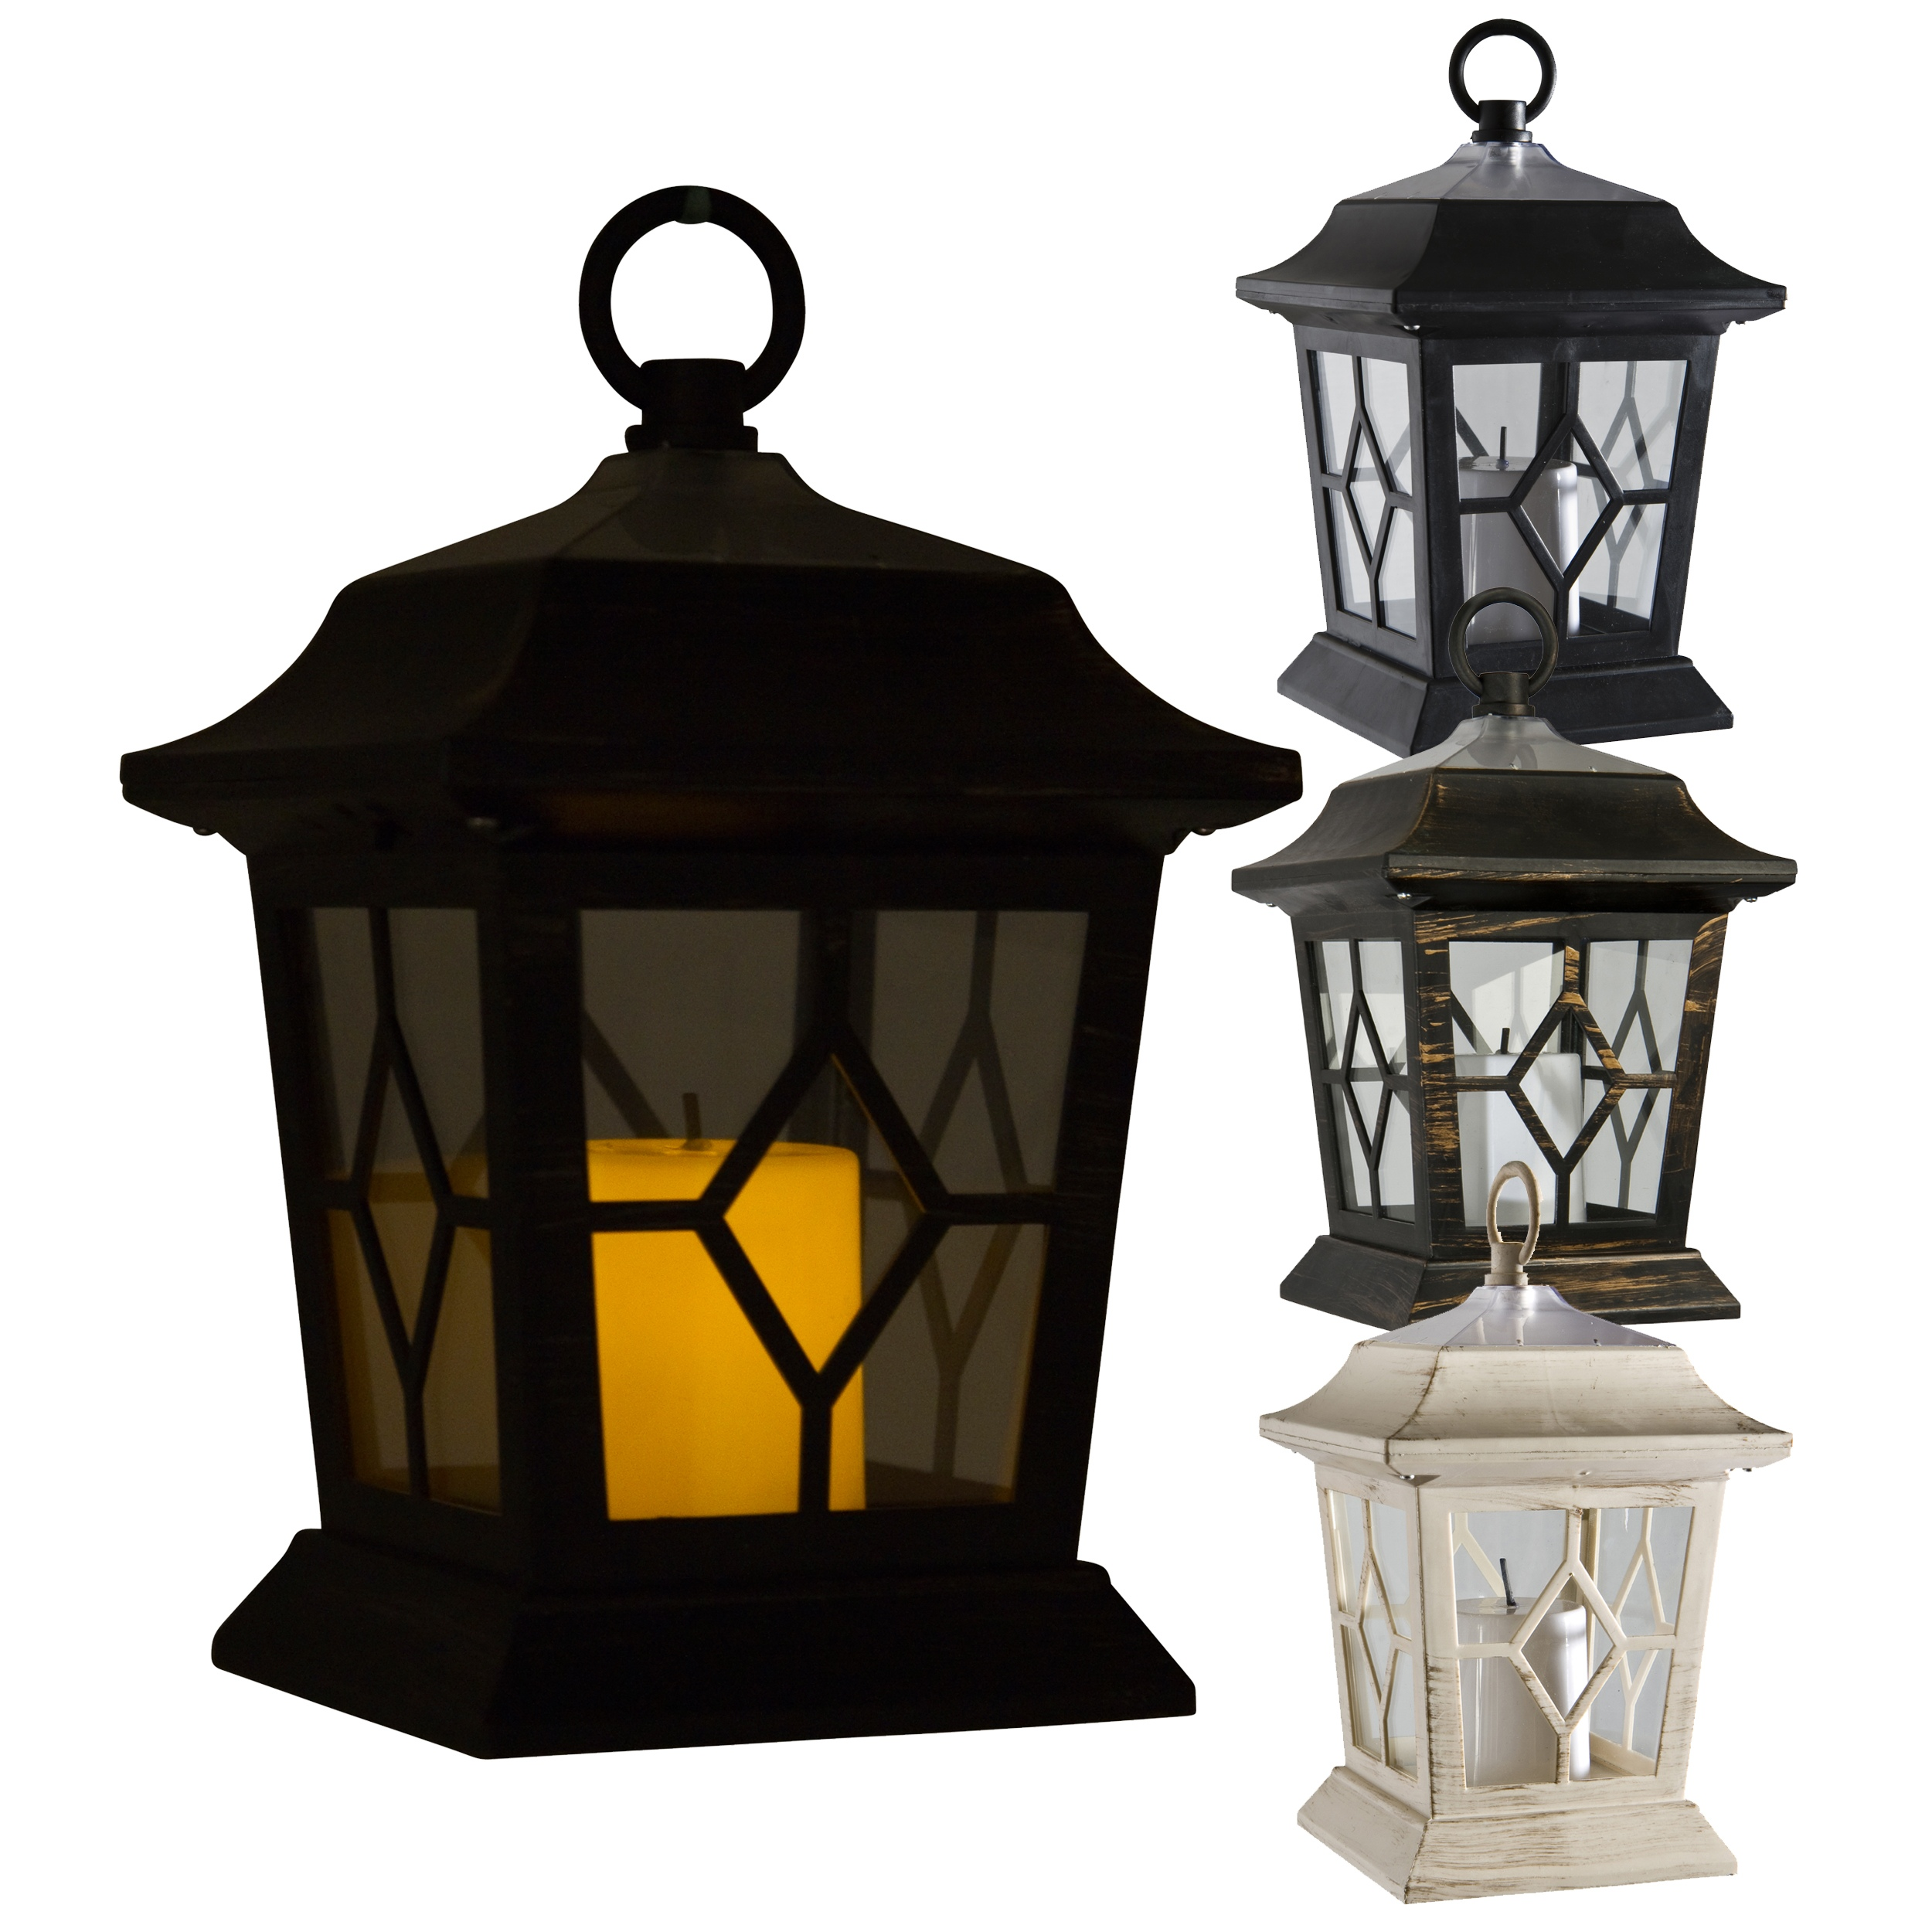 Solar Garden Light Lantern: LED Solar Powered Victorian Candle Lantern Lamp Light